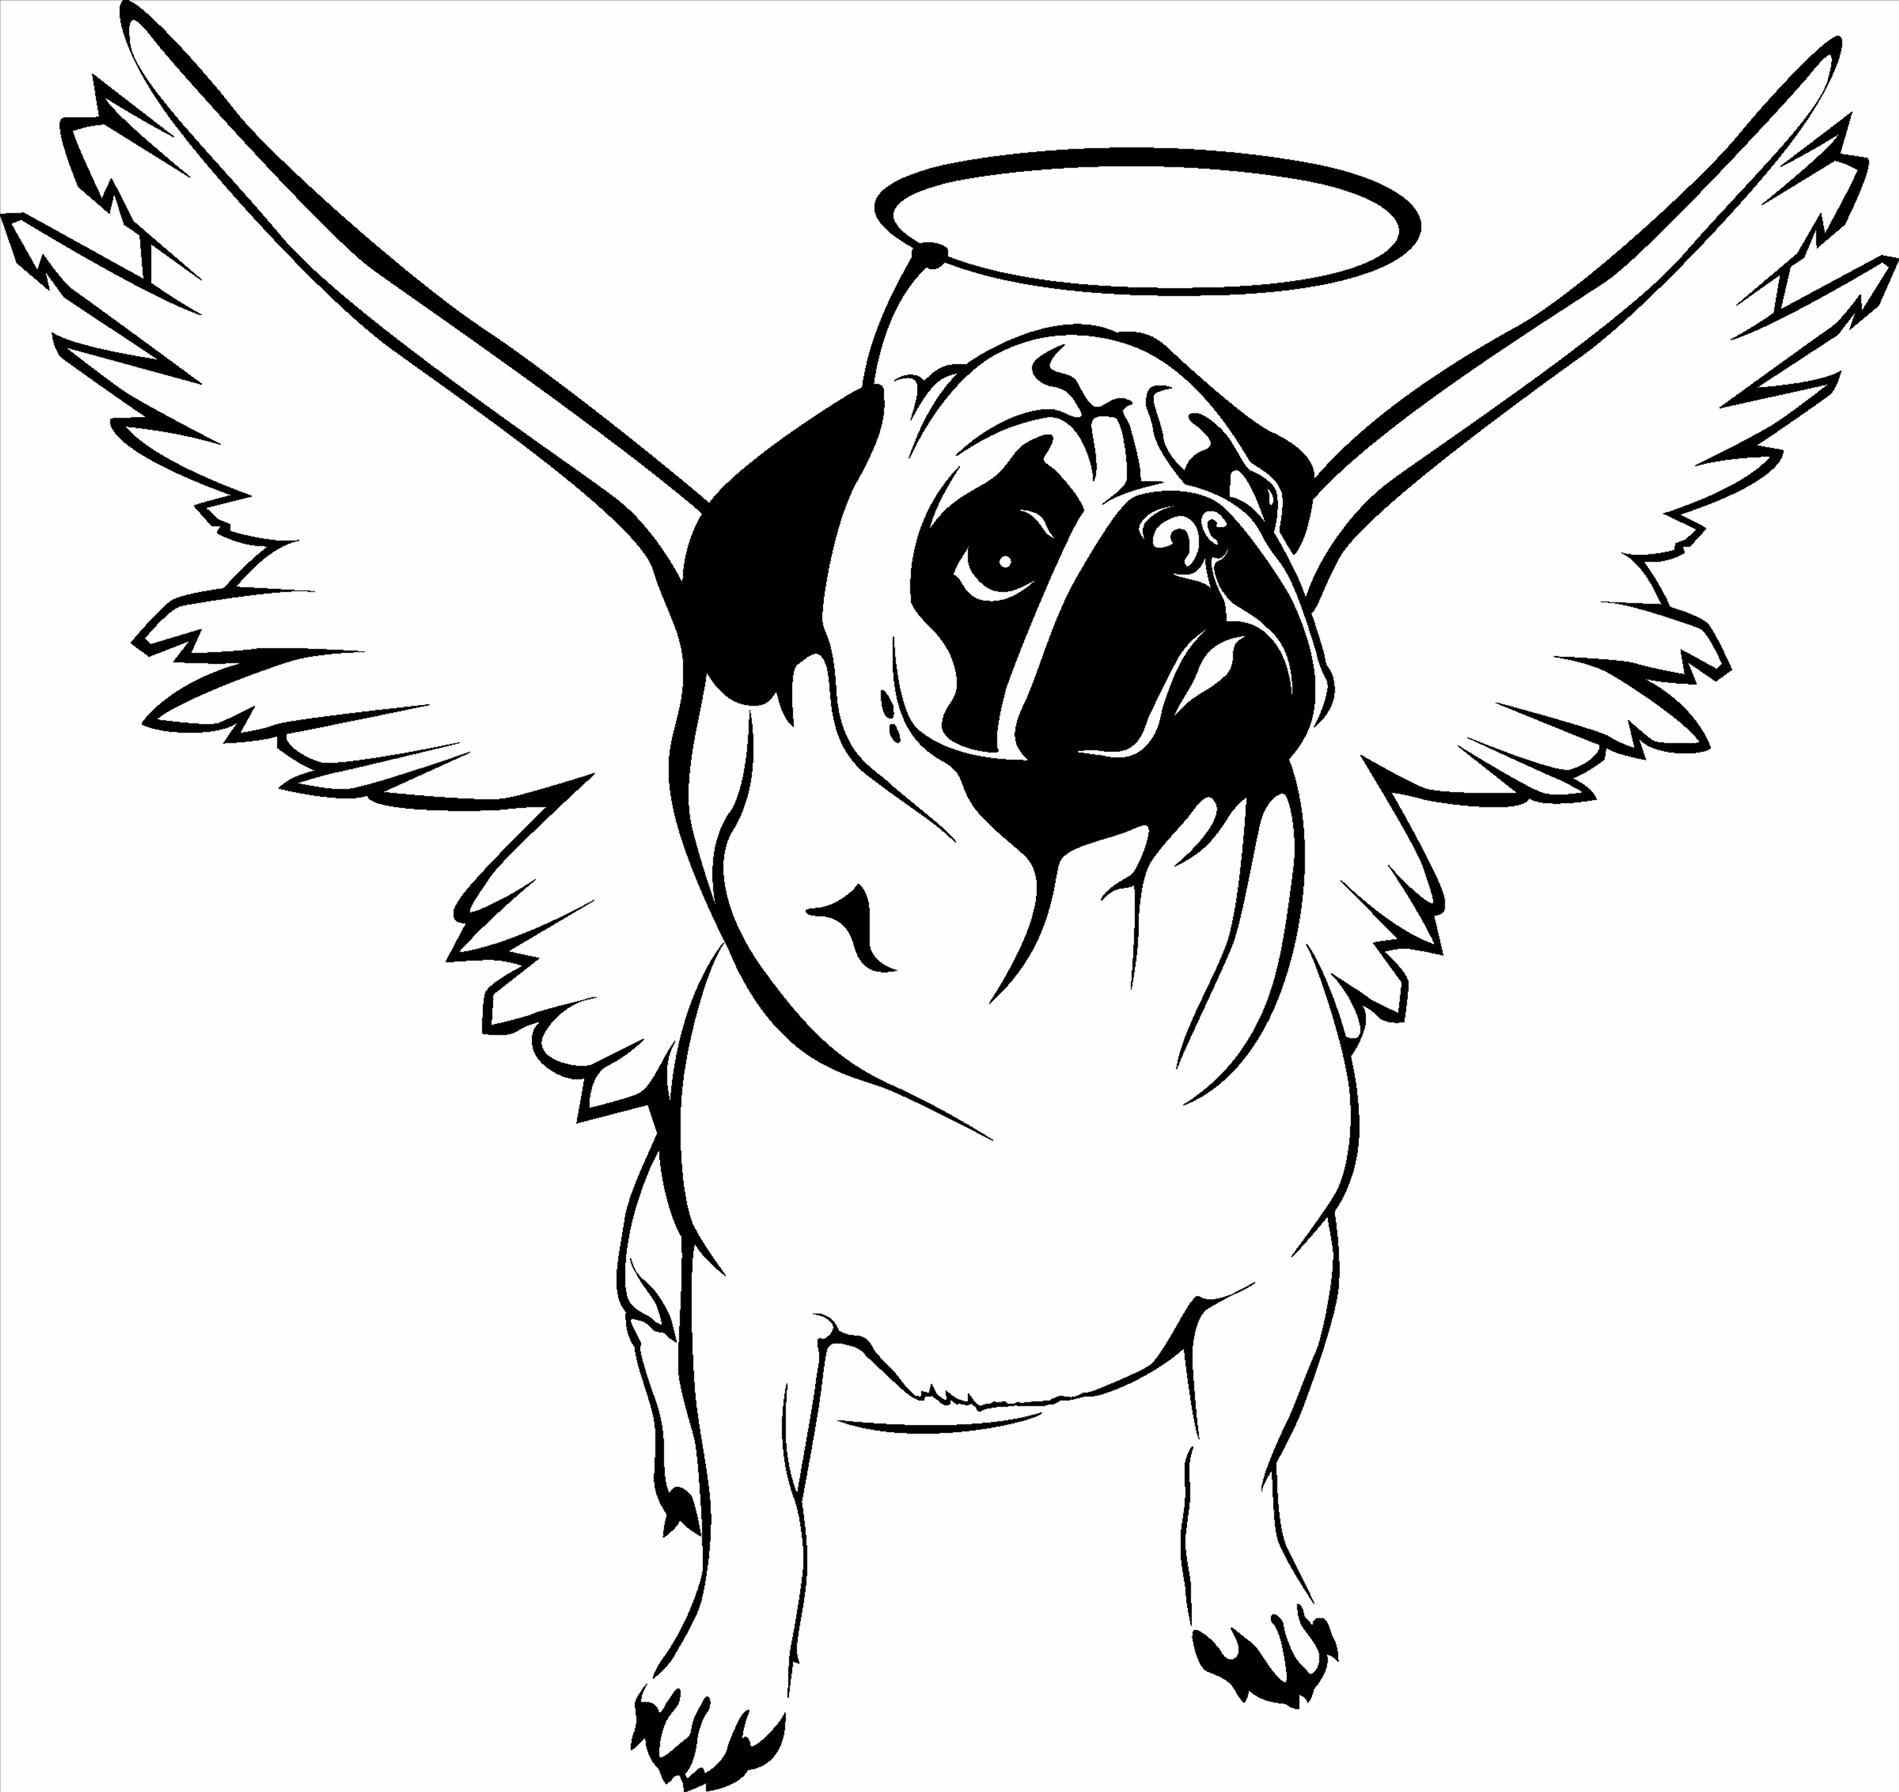 pug puppy coloring pages pug puppy drawing at getdrawings free download coloring pages puppy pug